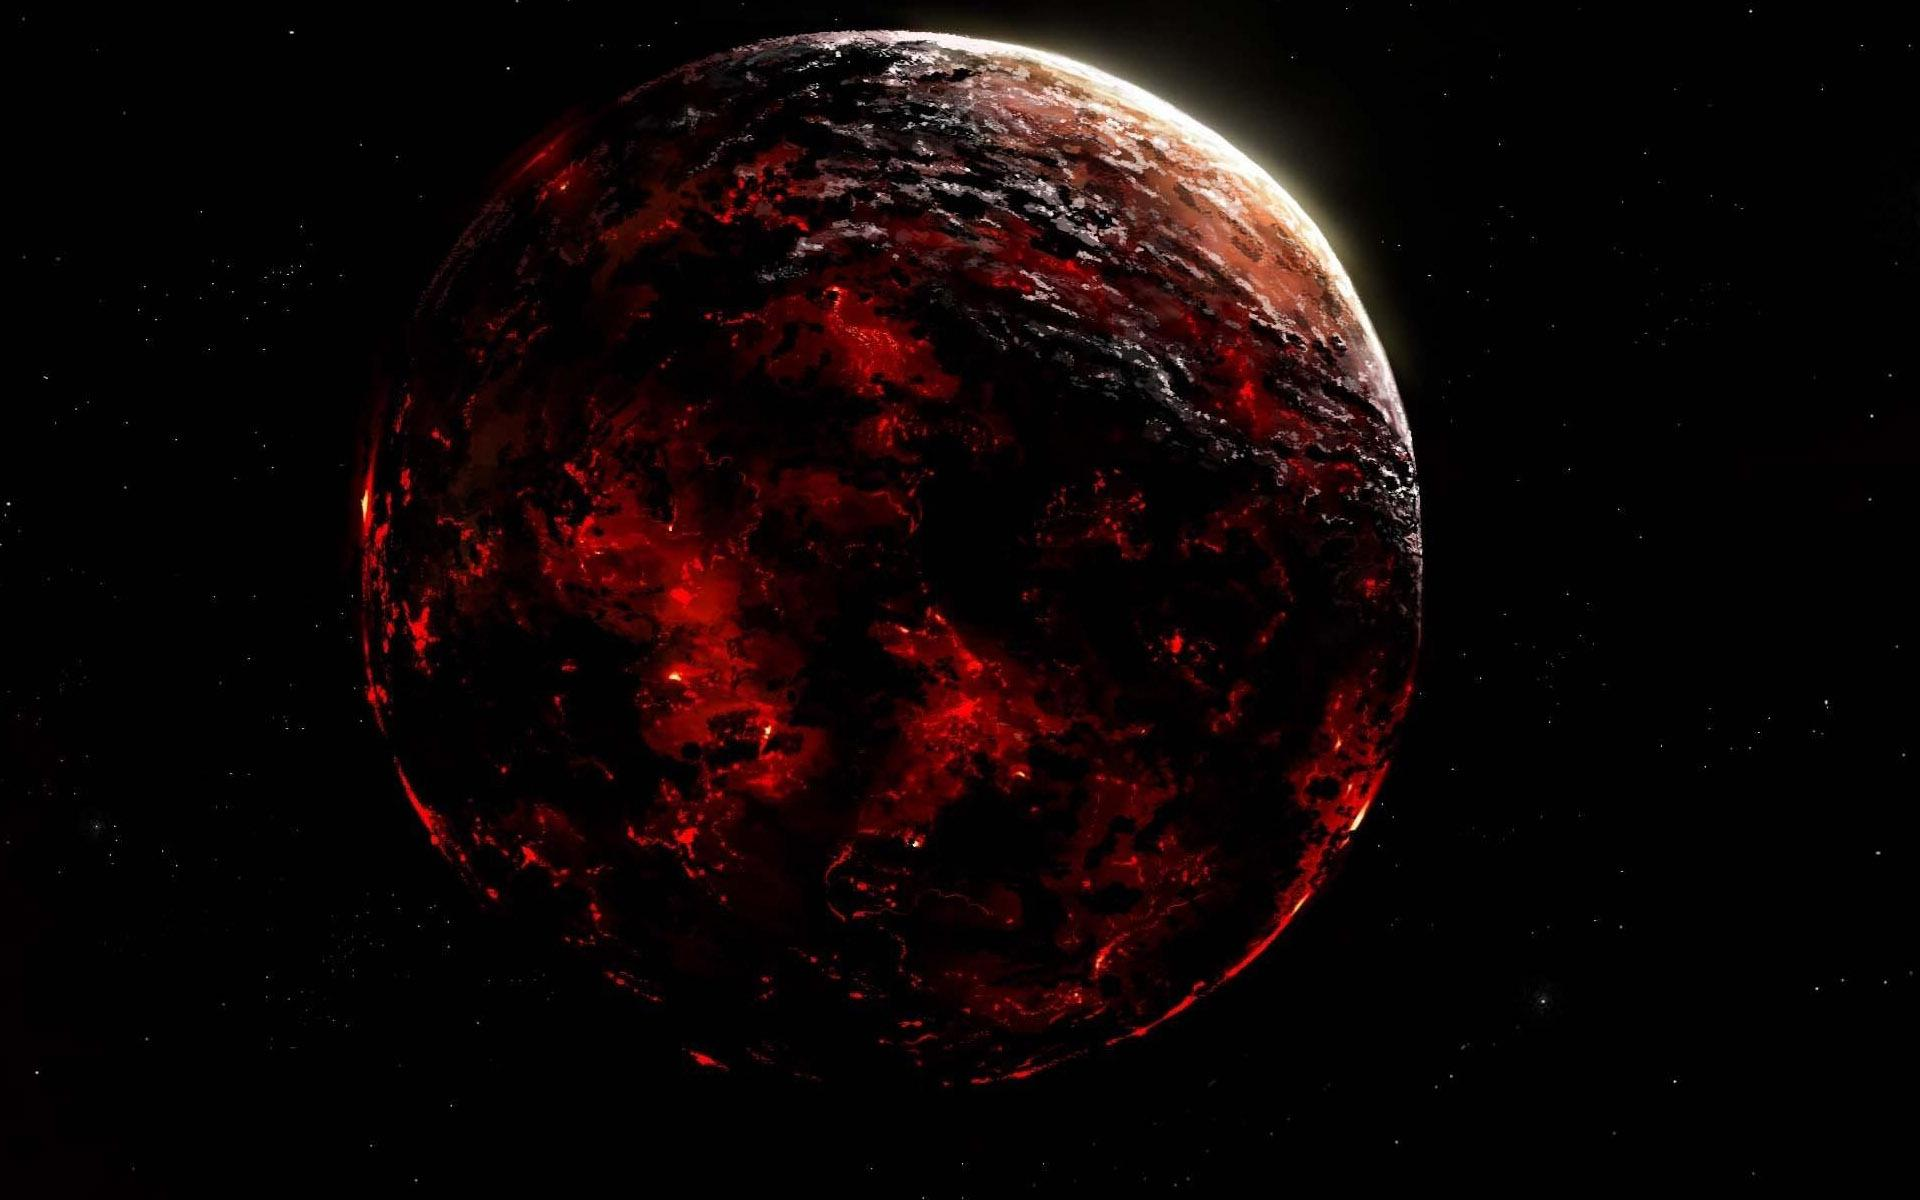 Black Hole Animated Wallpaper Hd Red Planet On Fire Wallpaper Download Free 149077